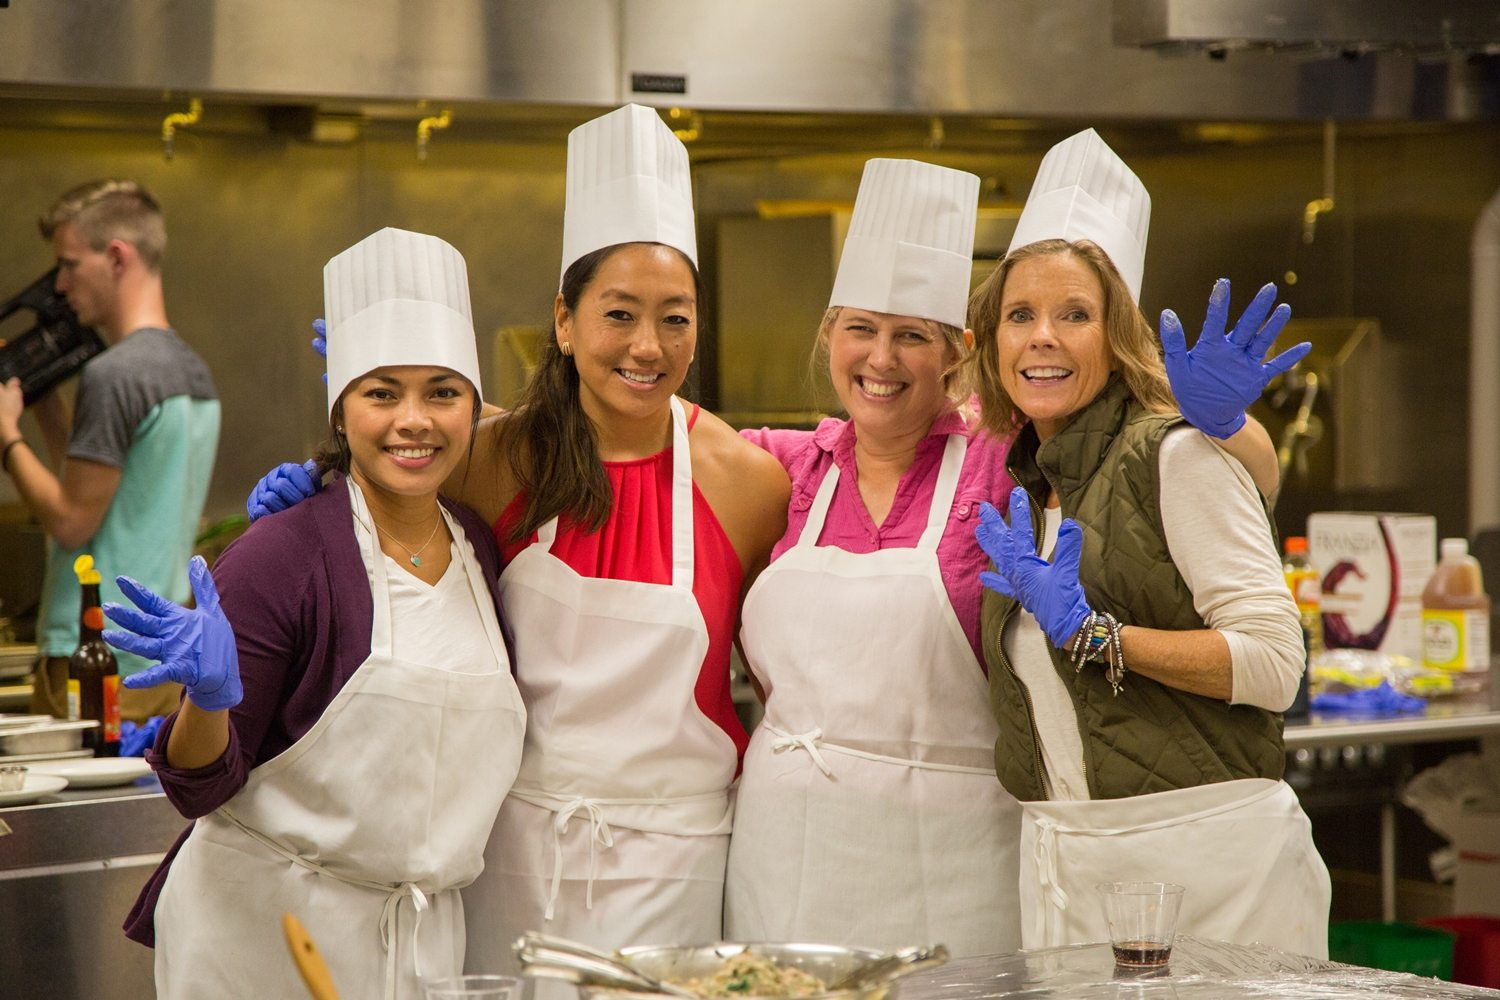 Ladies in chef hats and aprons